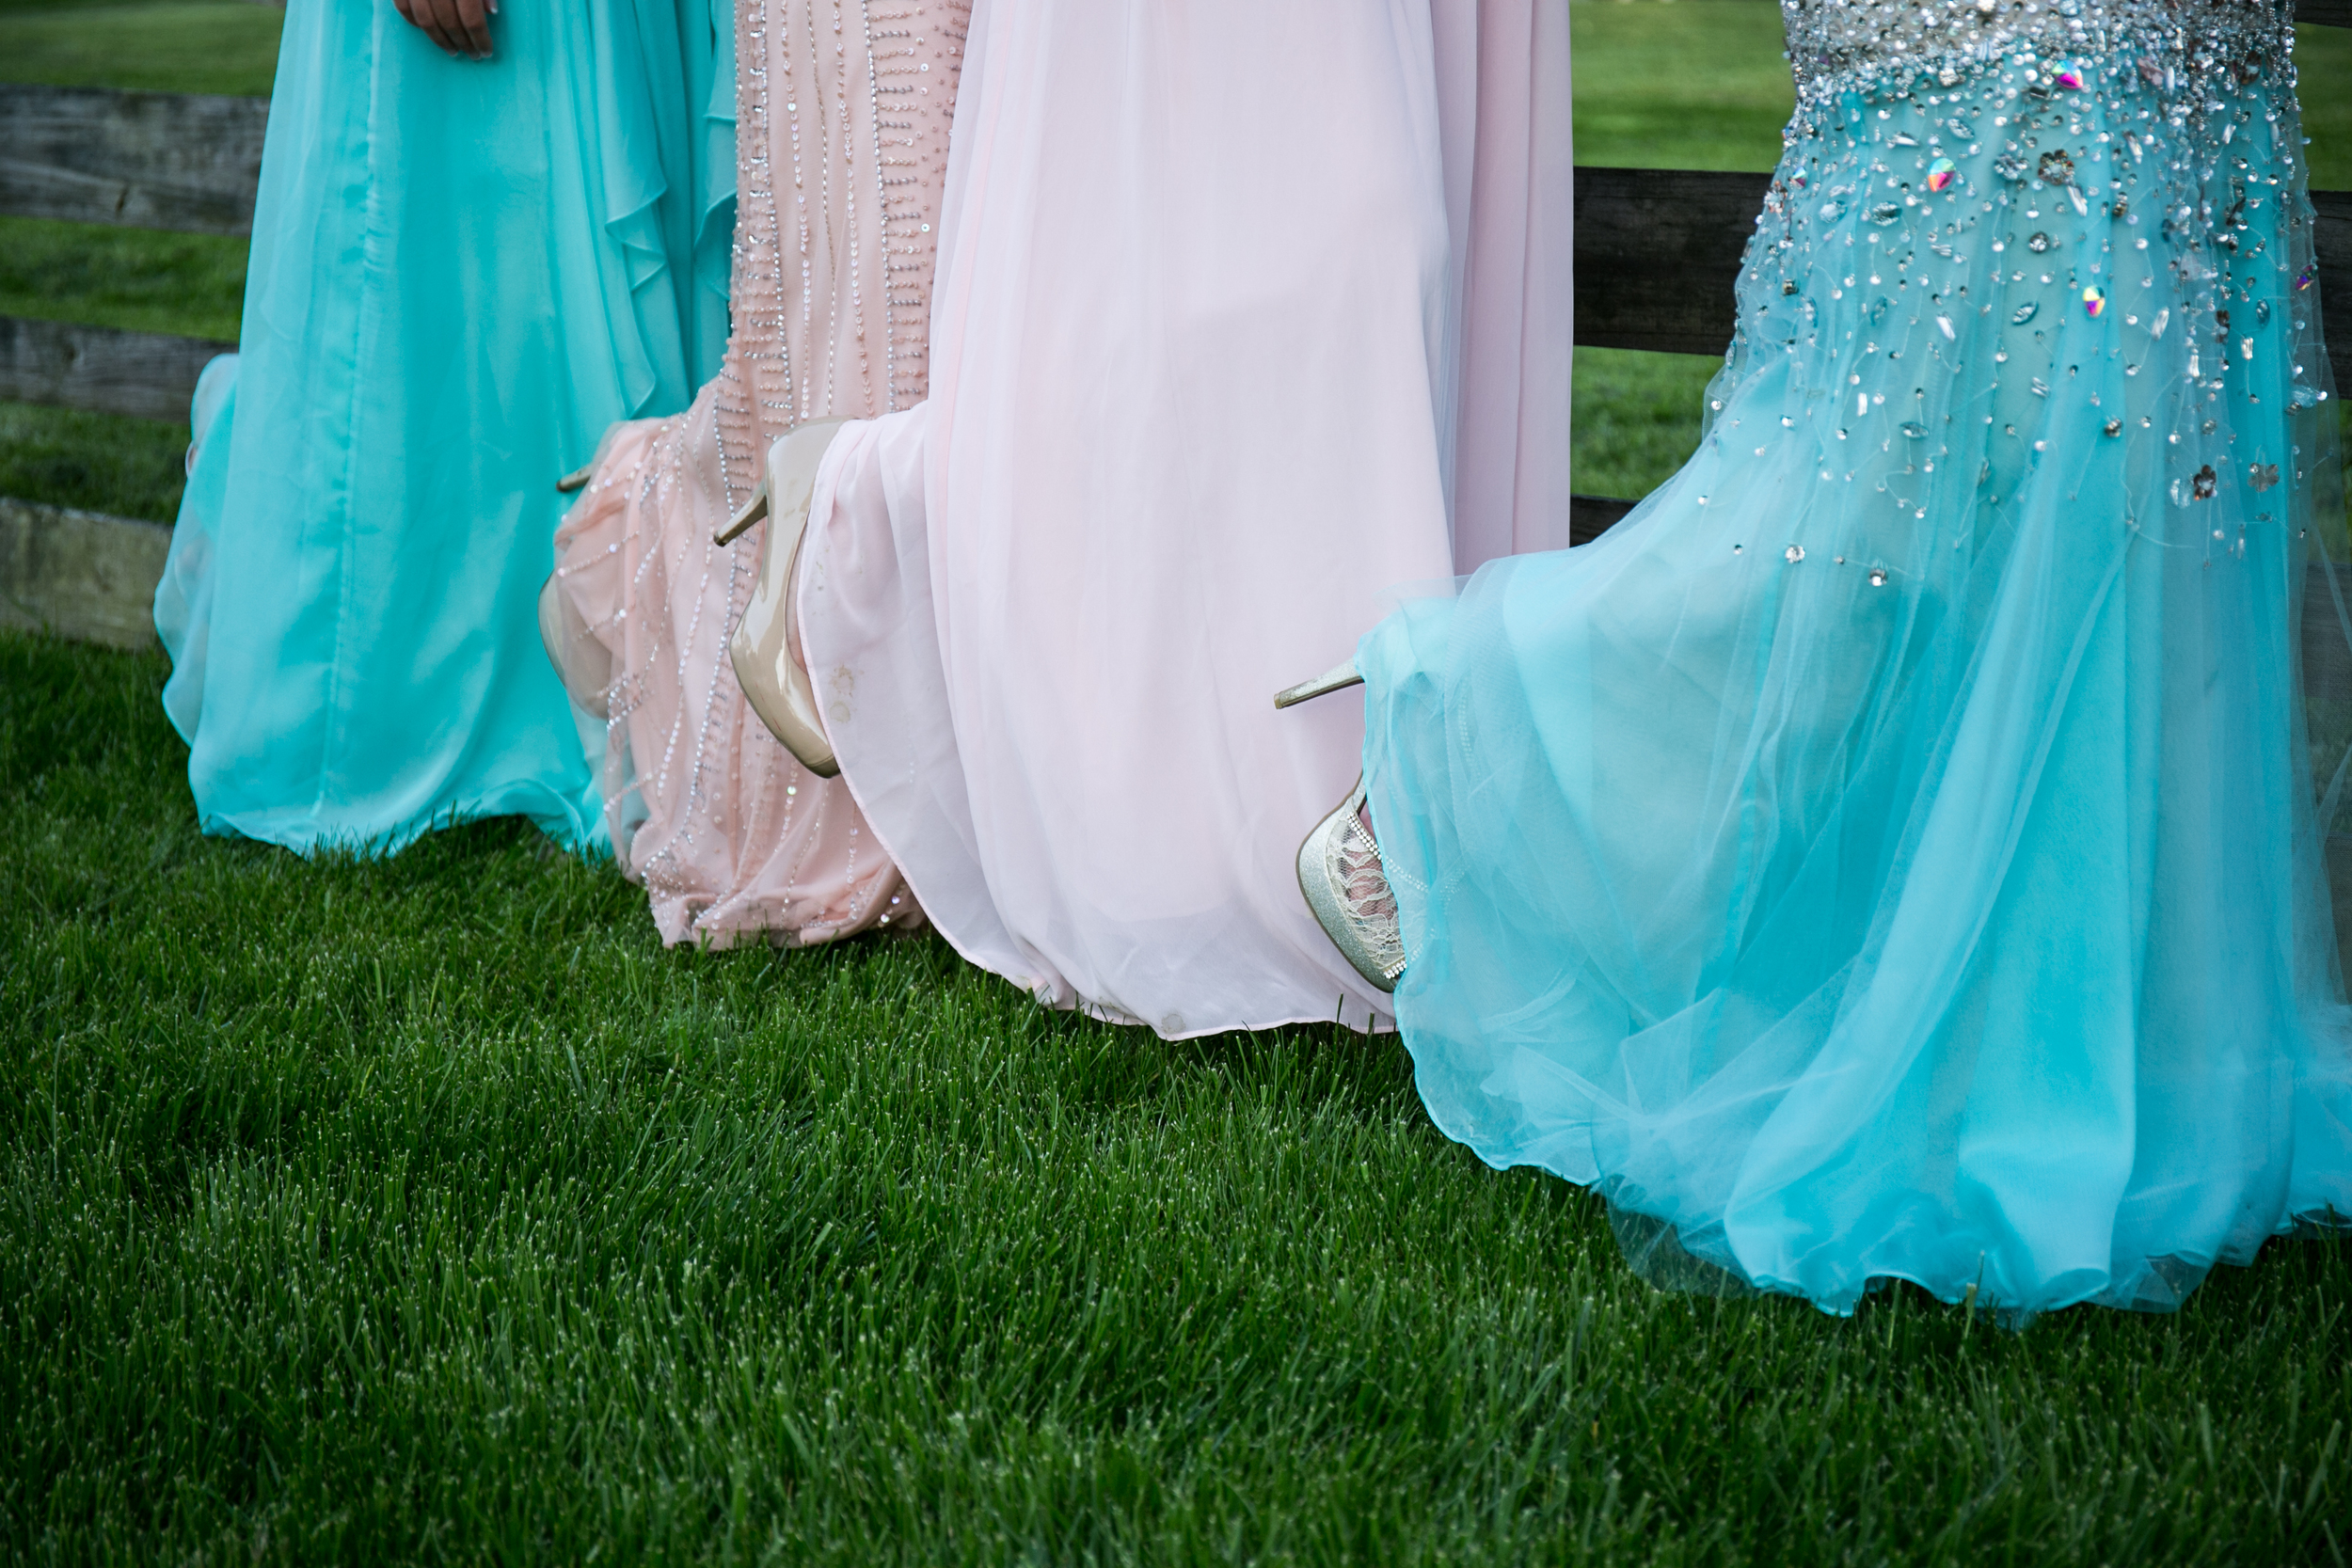 Mount-De-Sales-Pre-Prom-May-2014-120.jpg